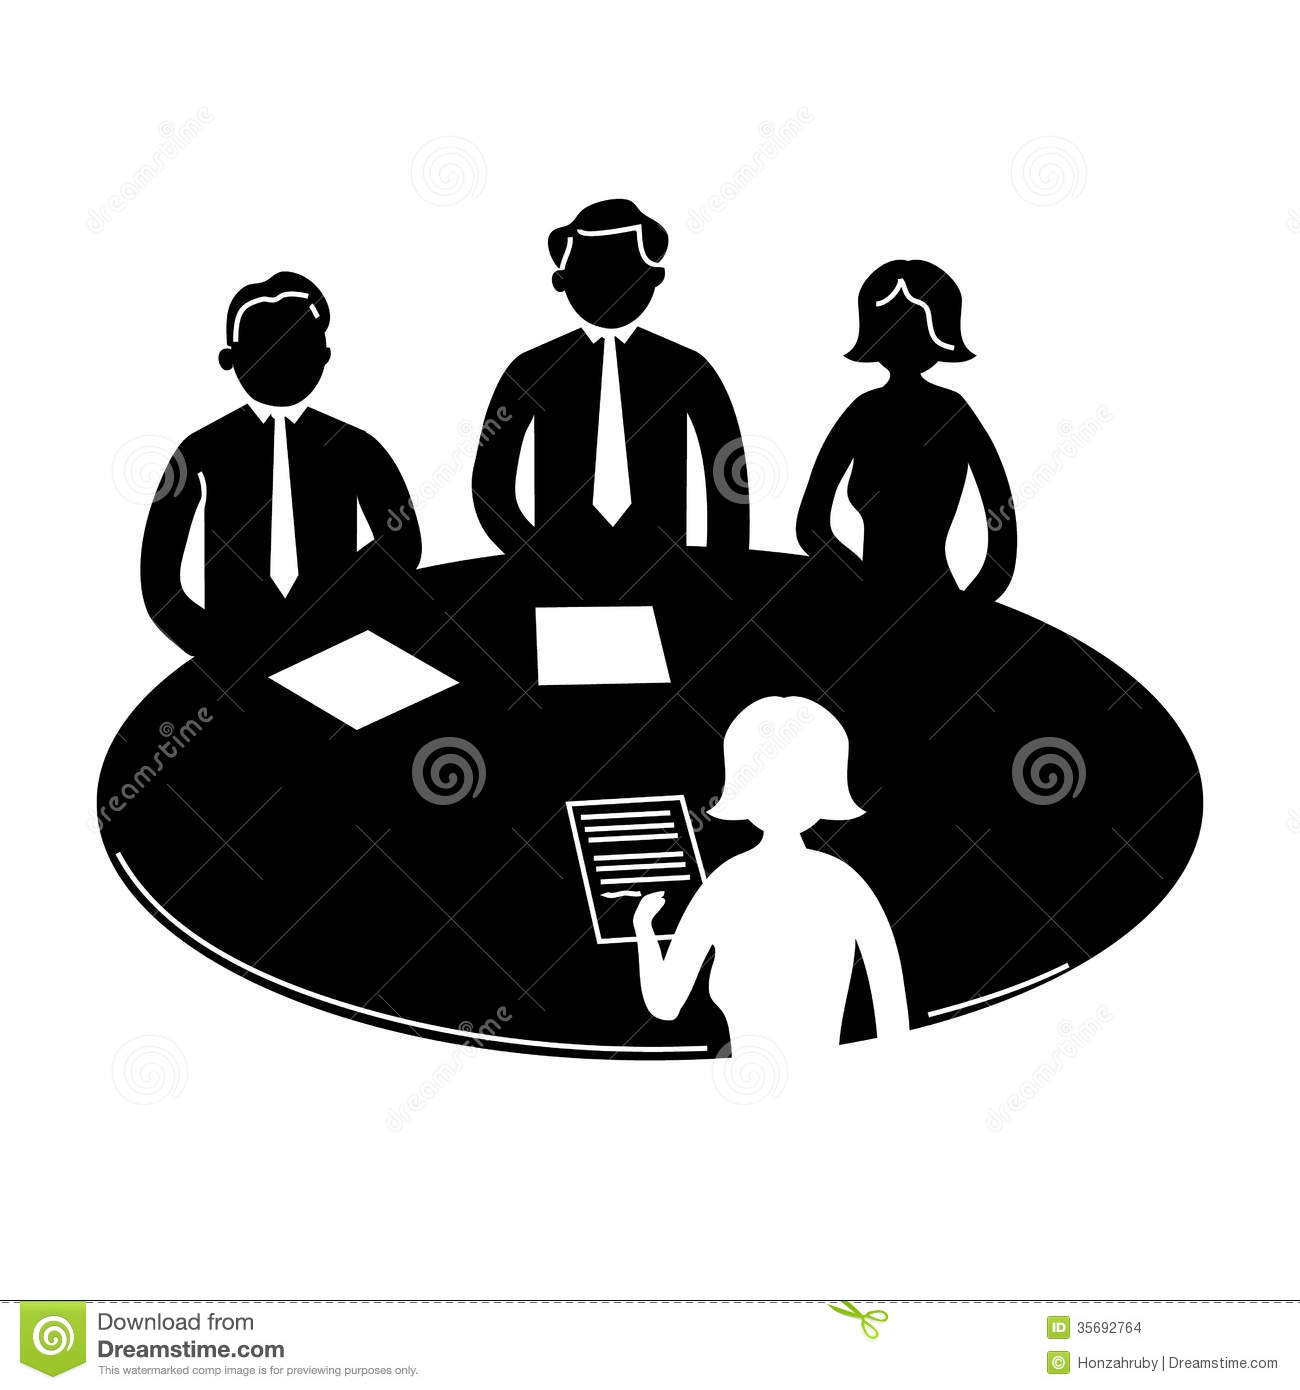 6 Meeting Business People Icons Images